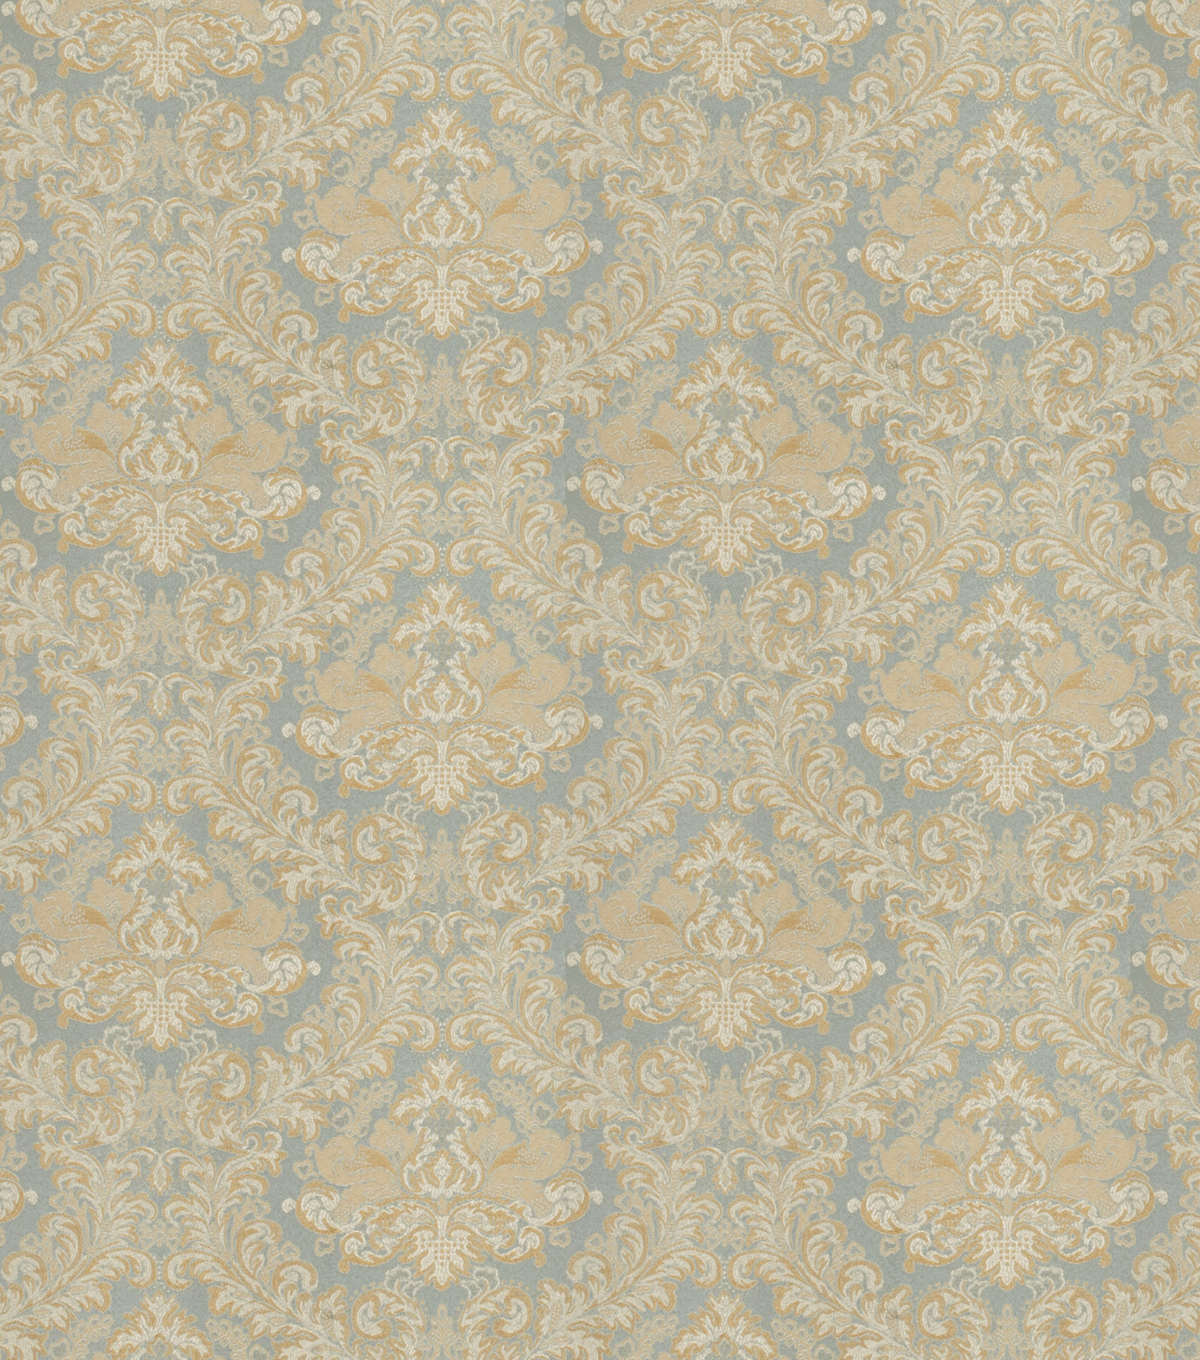 Eaton Square Lightweight Decor Fabric 54\u0022-Creole/Ice Blue